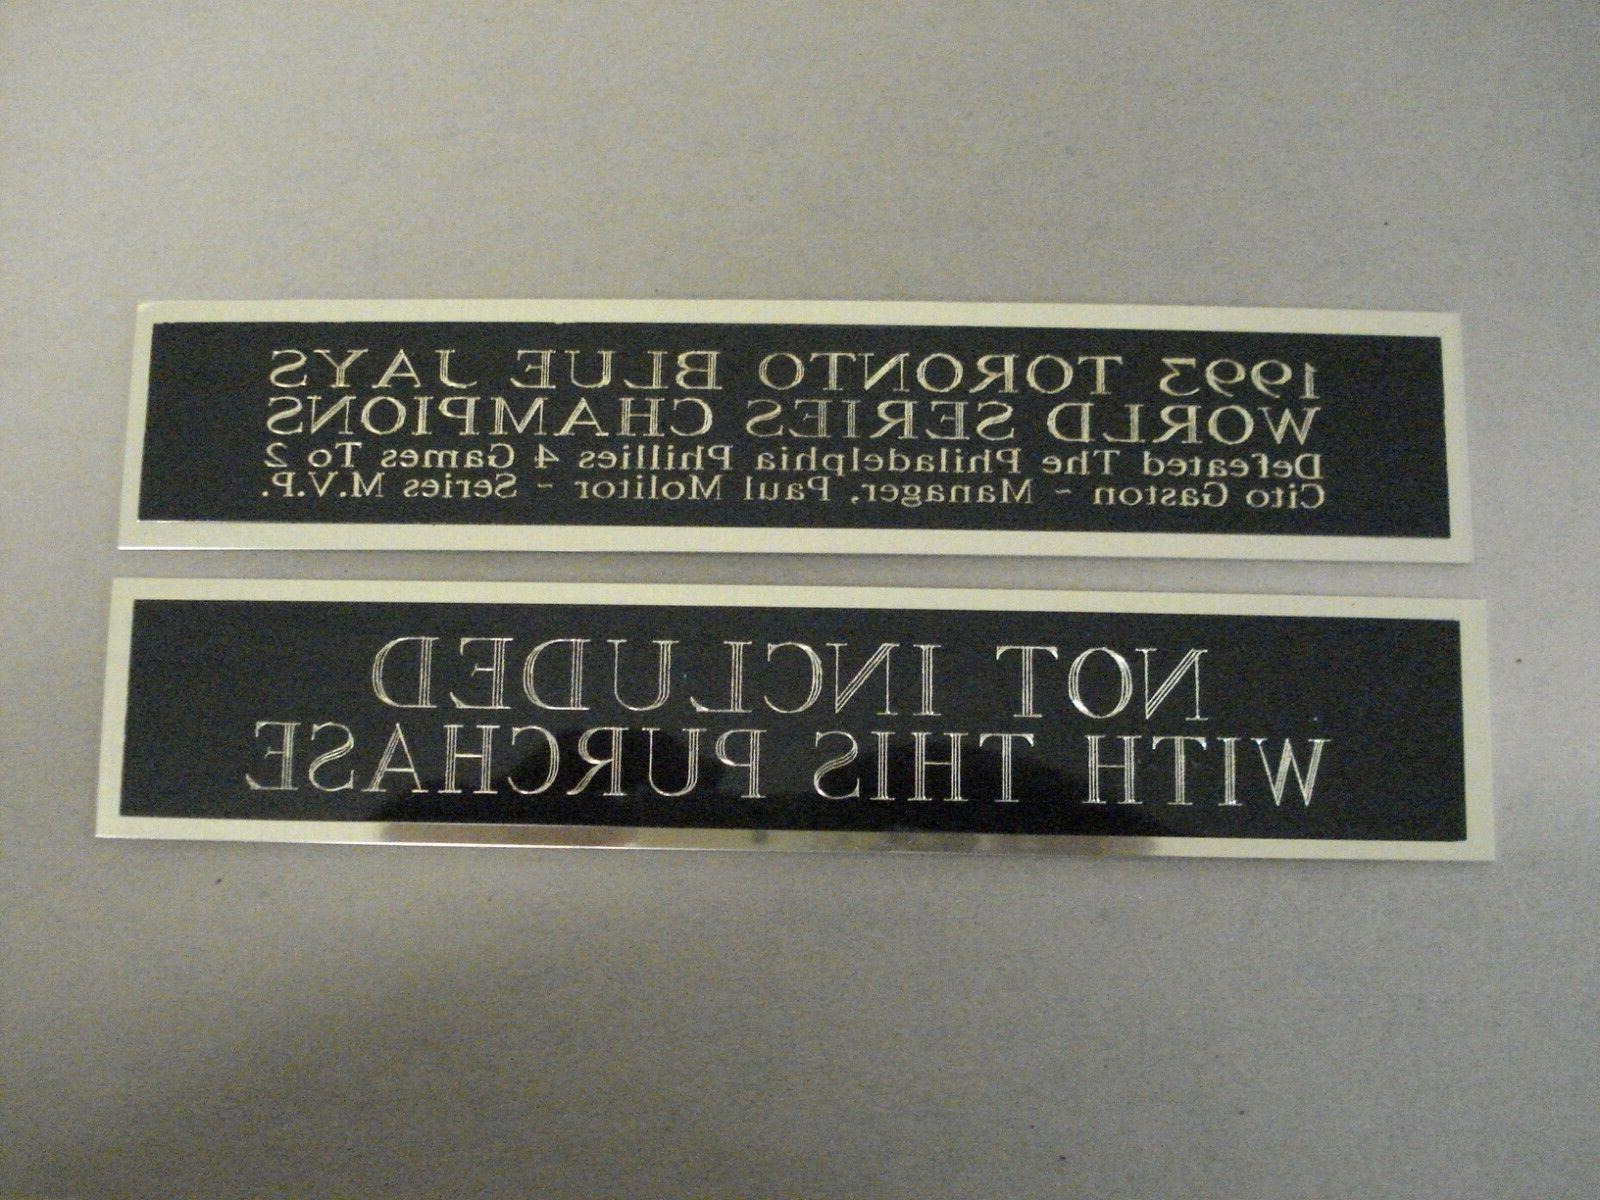 Charlie Nameplate for a Jersey 8